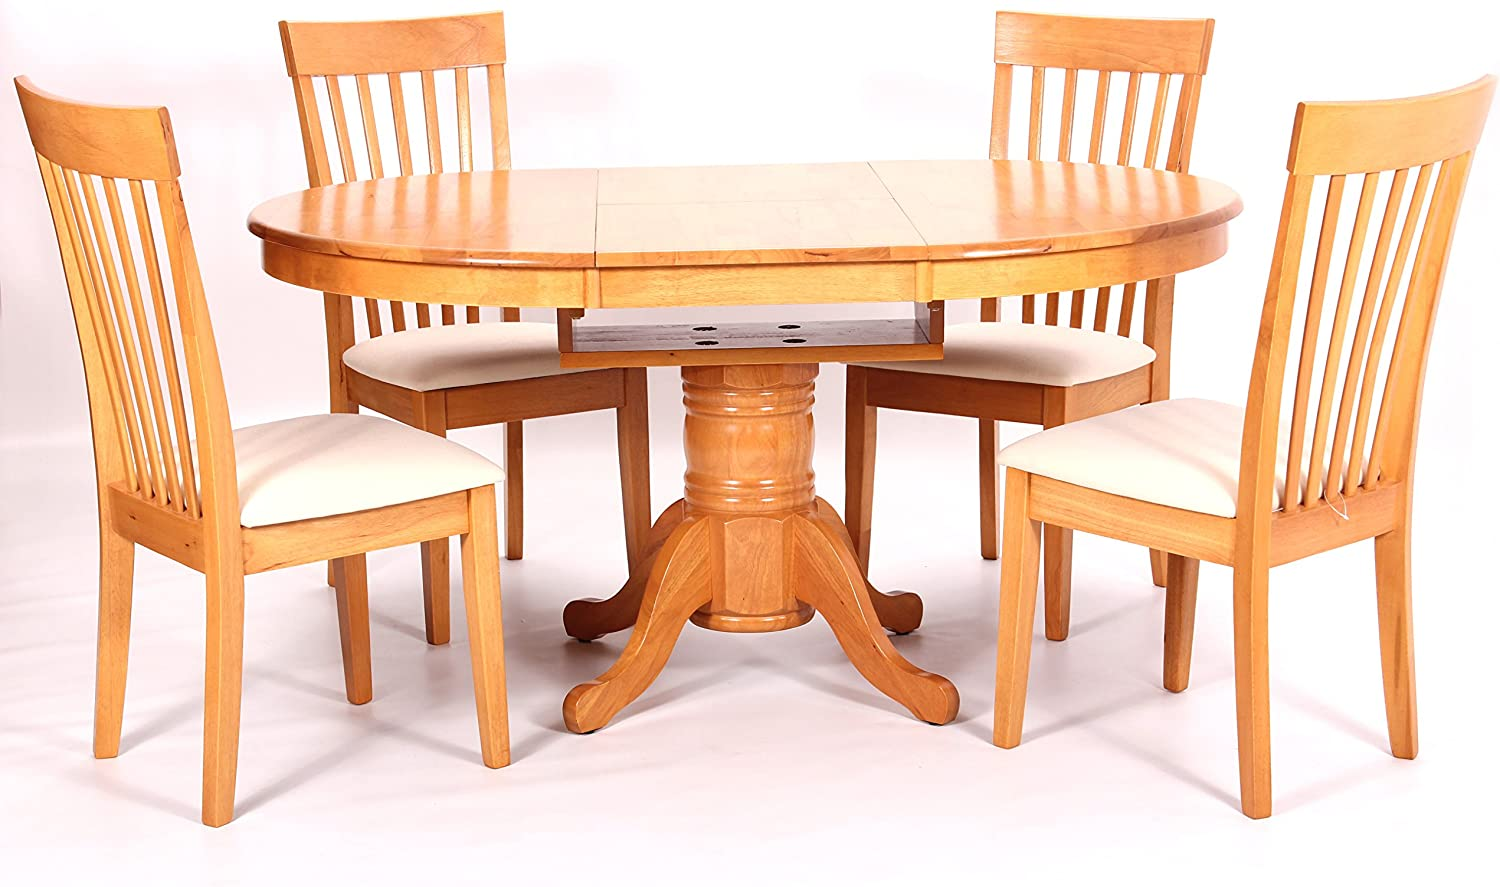 Greenheart Furniture Uk Ireland Leicester Oval Round Extending Pedestal Dining Table 4 Chairs Amazon Co Uk Kitchen Home